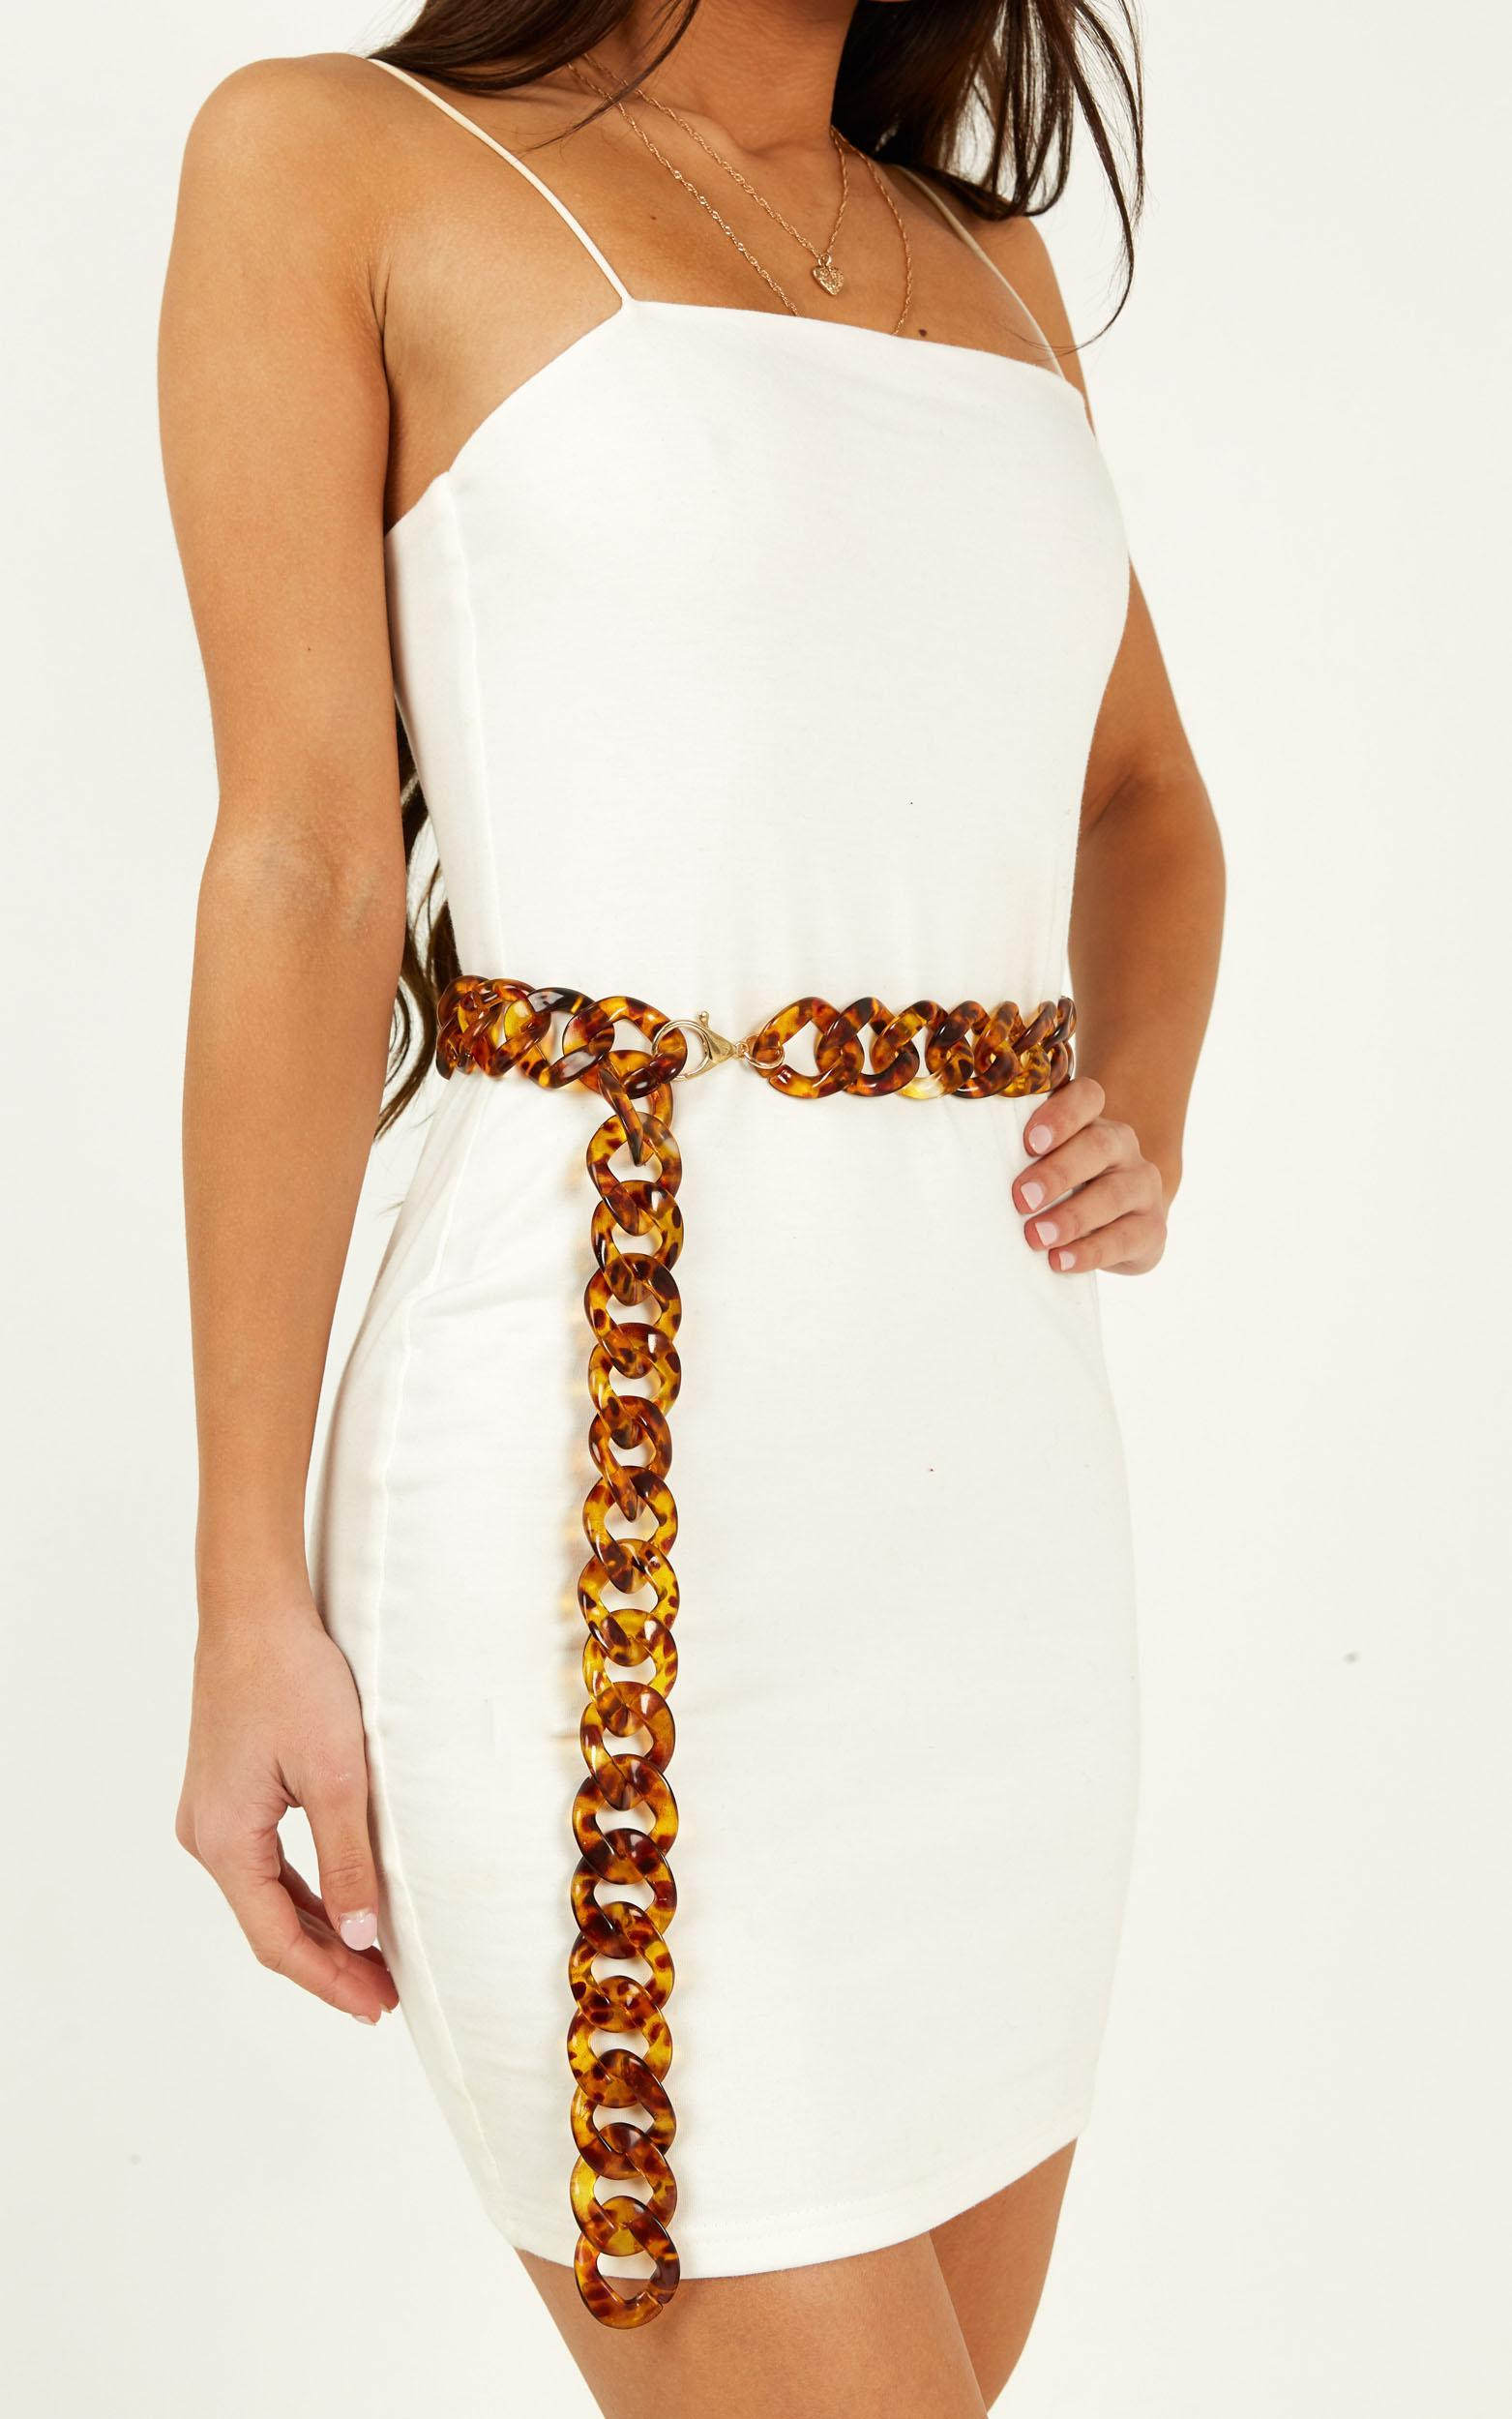 Lost Stars Chain Belt In Tortoiseshell, , hi-res image number null